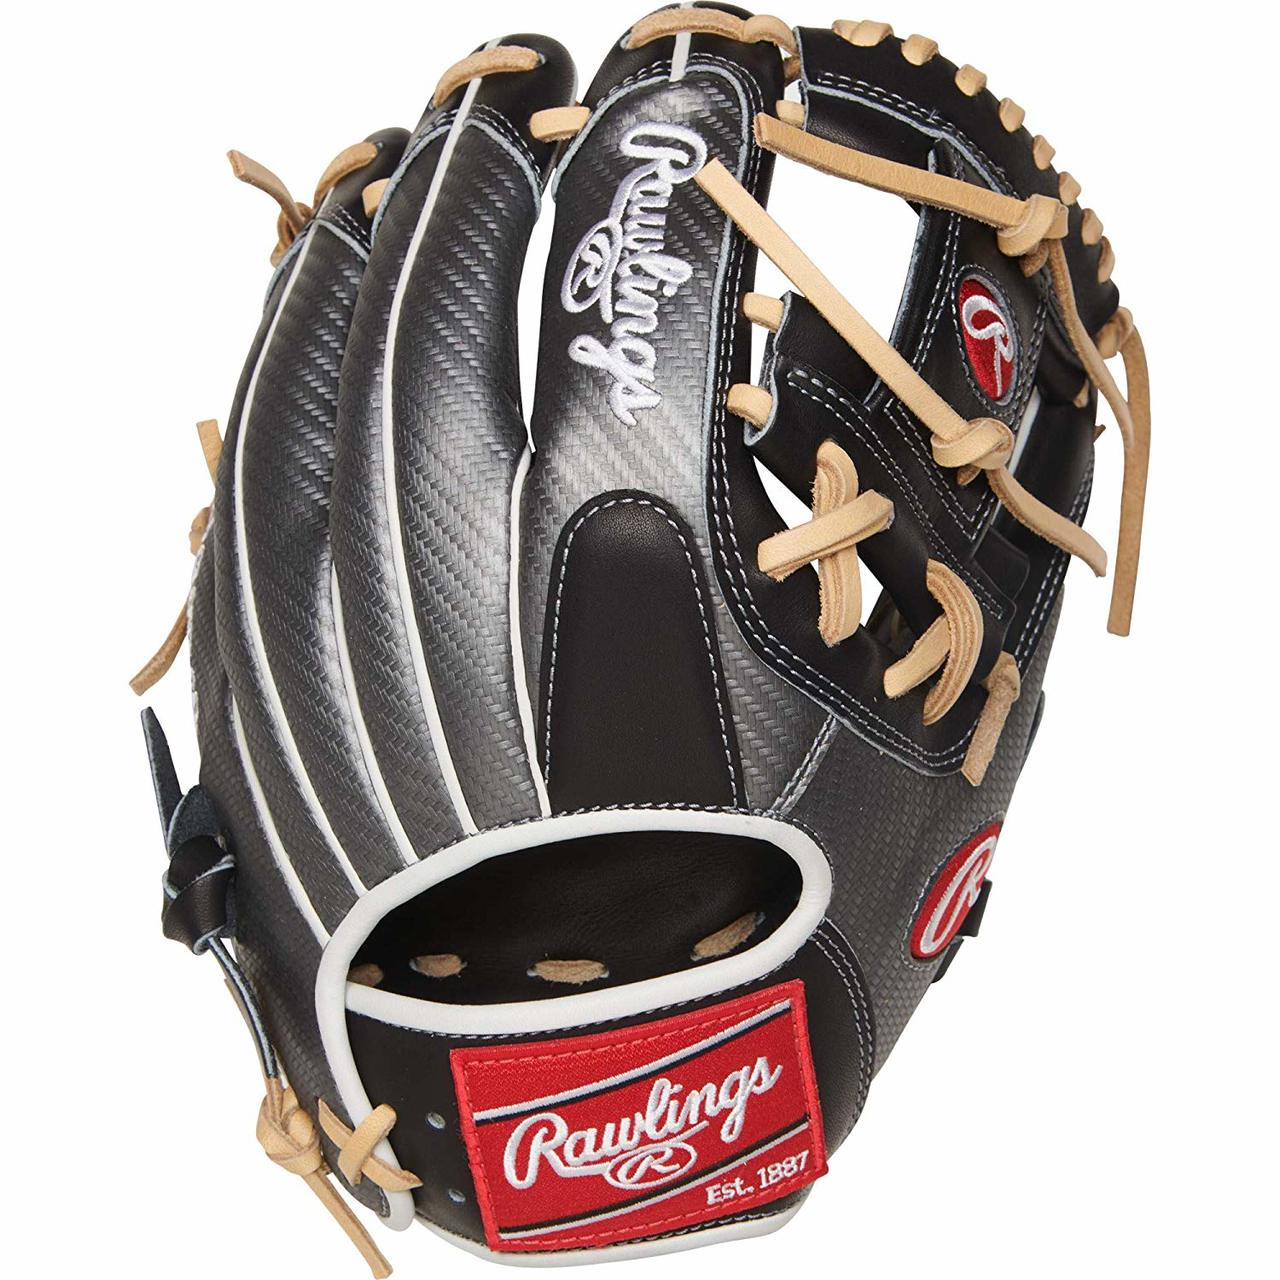 rawlings-heart-of-the-hide-hyper-infield-baseball-glove-11-5-right-hand-throw PRO204-2BCF-RightHandThrow Rawlings 083321526510 Constructed from Rawlings' world-renowned Heart of the Hide® steer hide leather